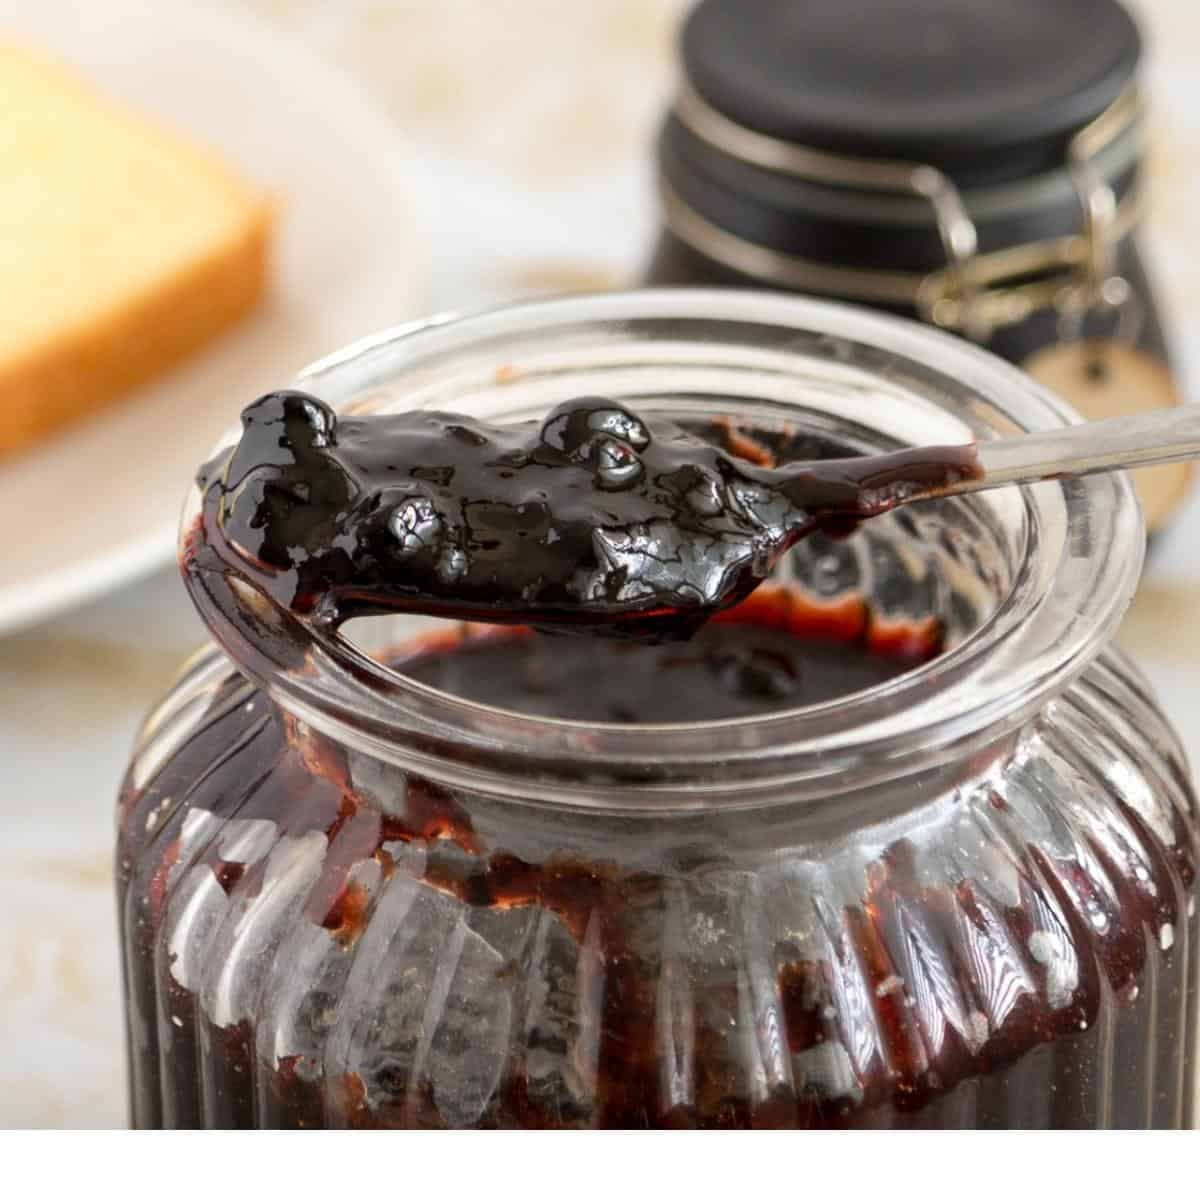 A jar with blueberry jam.